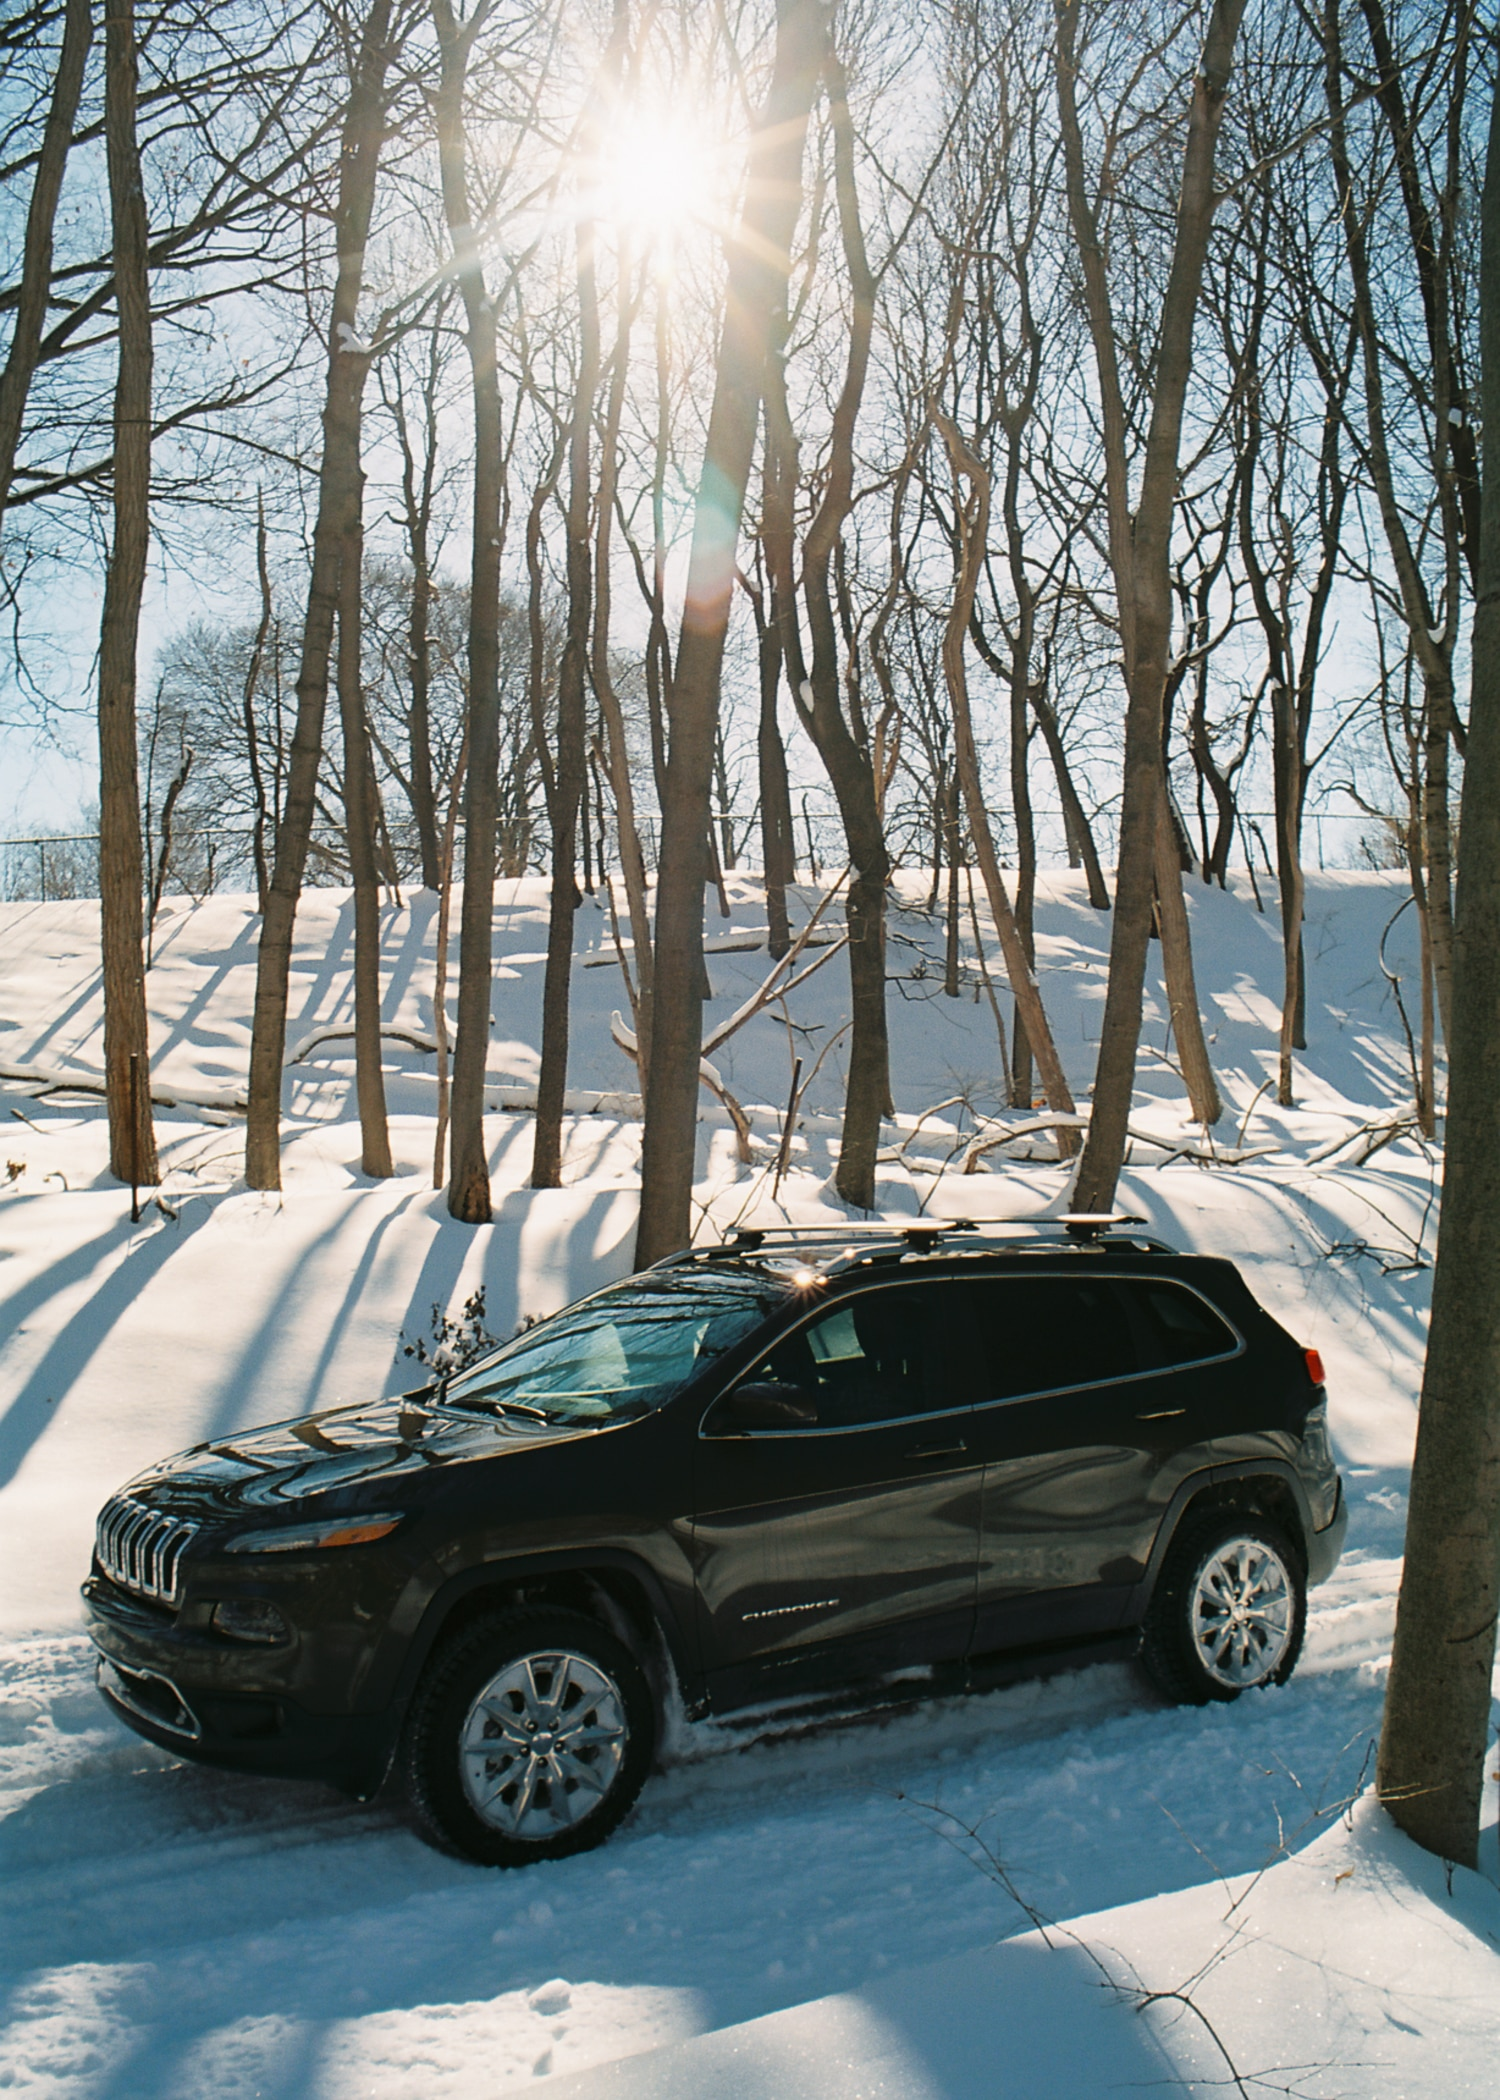 2014 Jeep Cherokee Limited - Snow Day